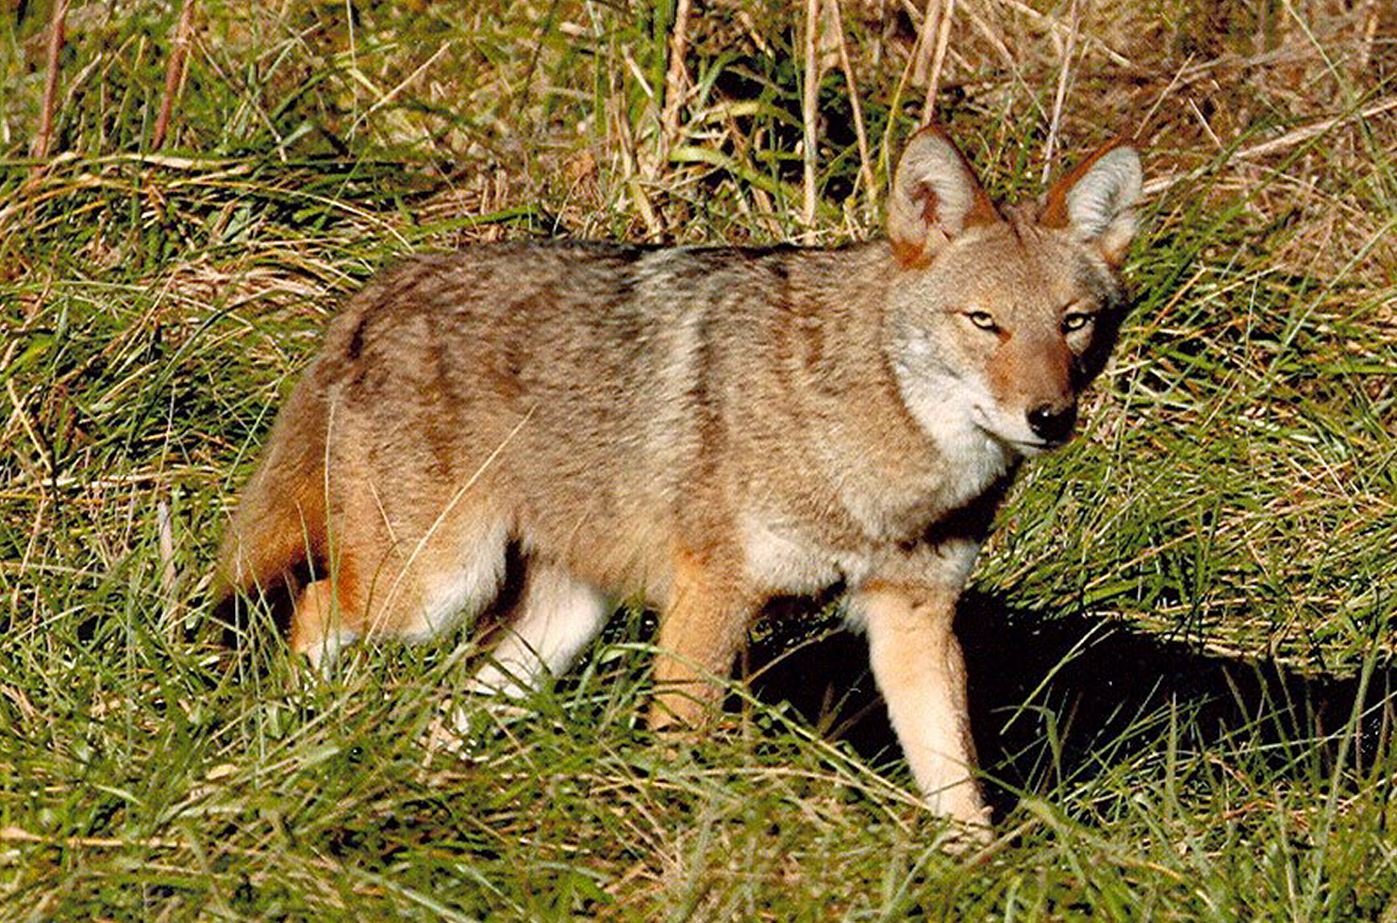 Coyote The coyote may be the most adaptive predator in North America ...